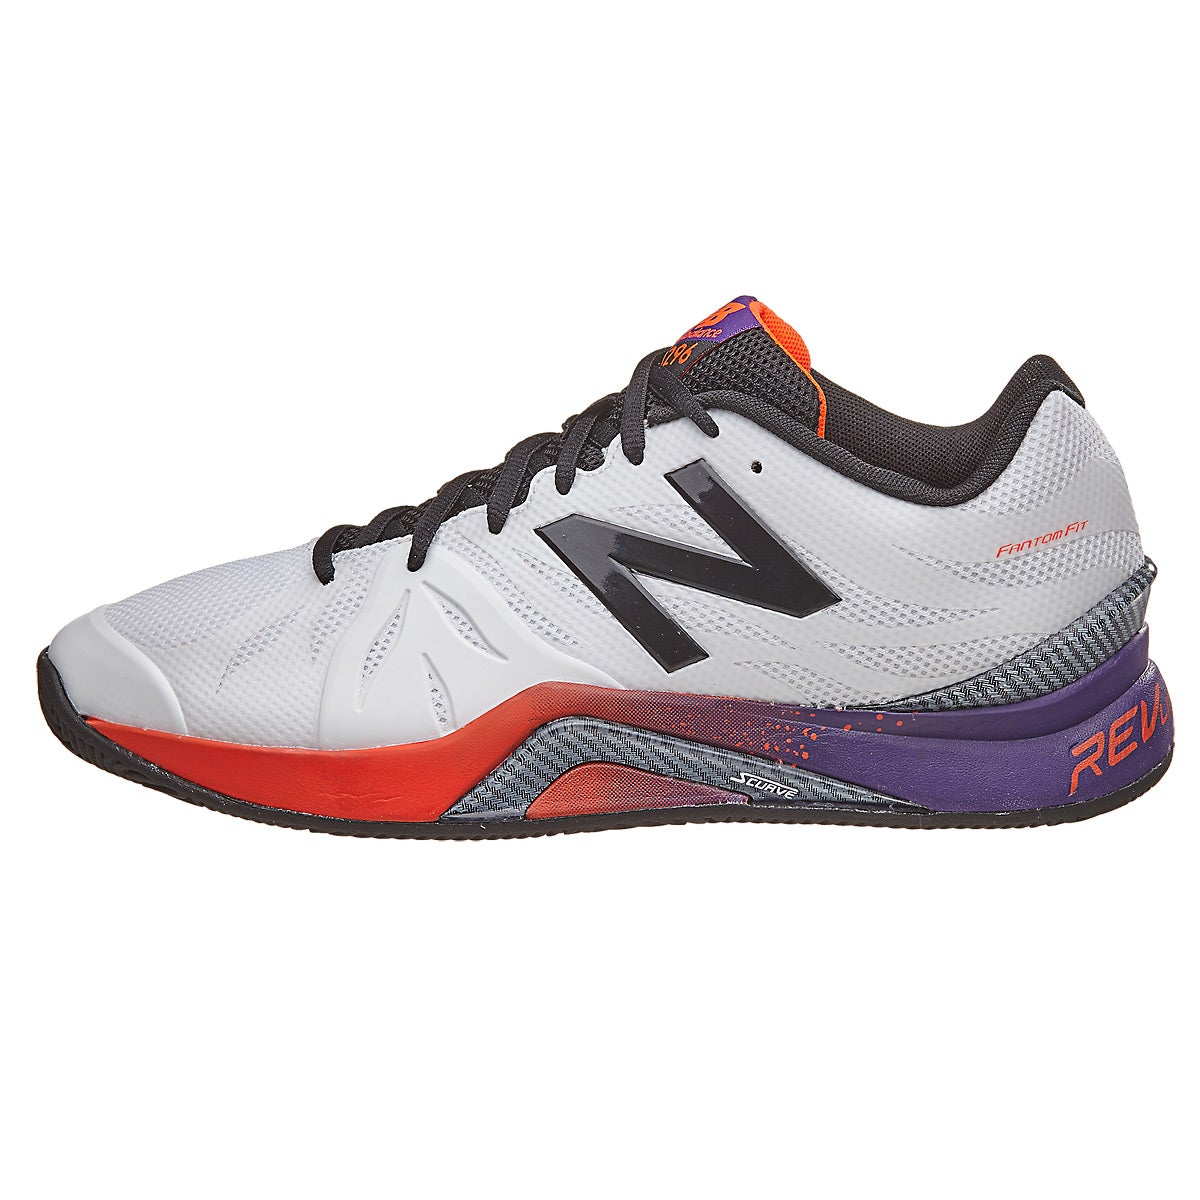 New Balance MC 1296v2 D White/Plum Men's Shoes 360° View